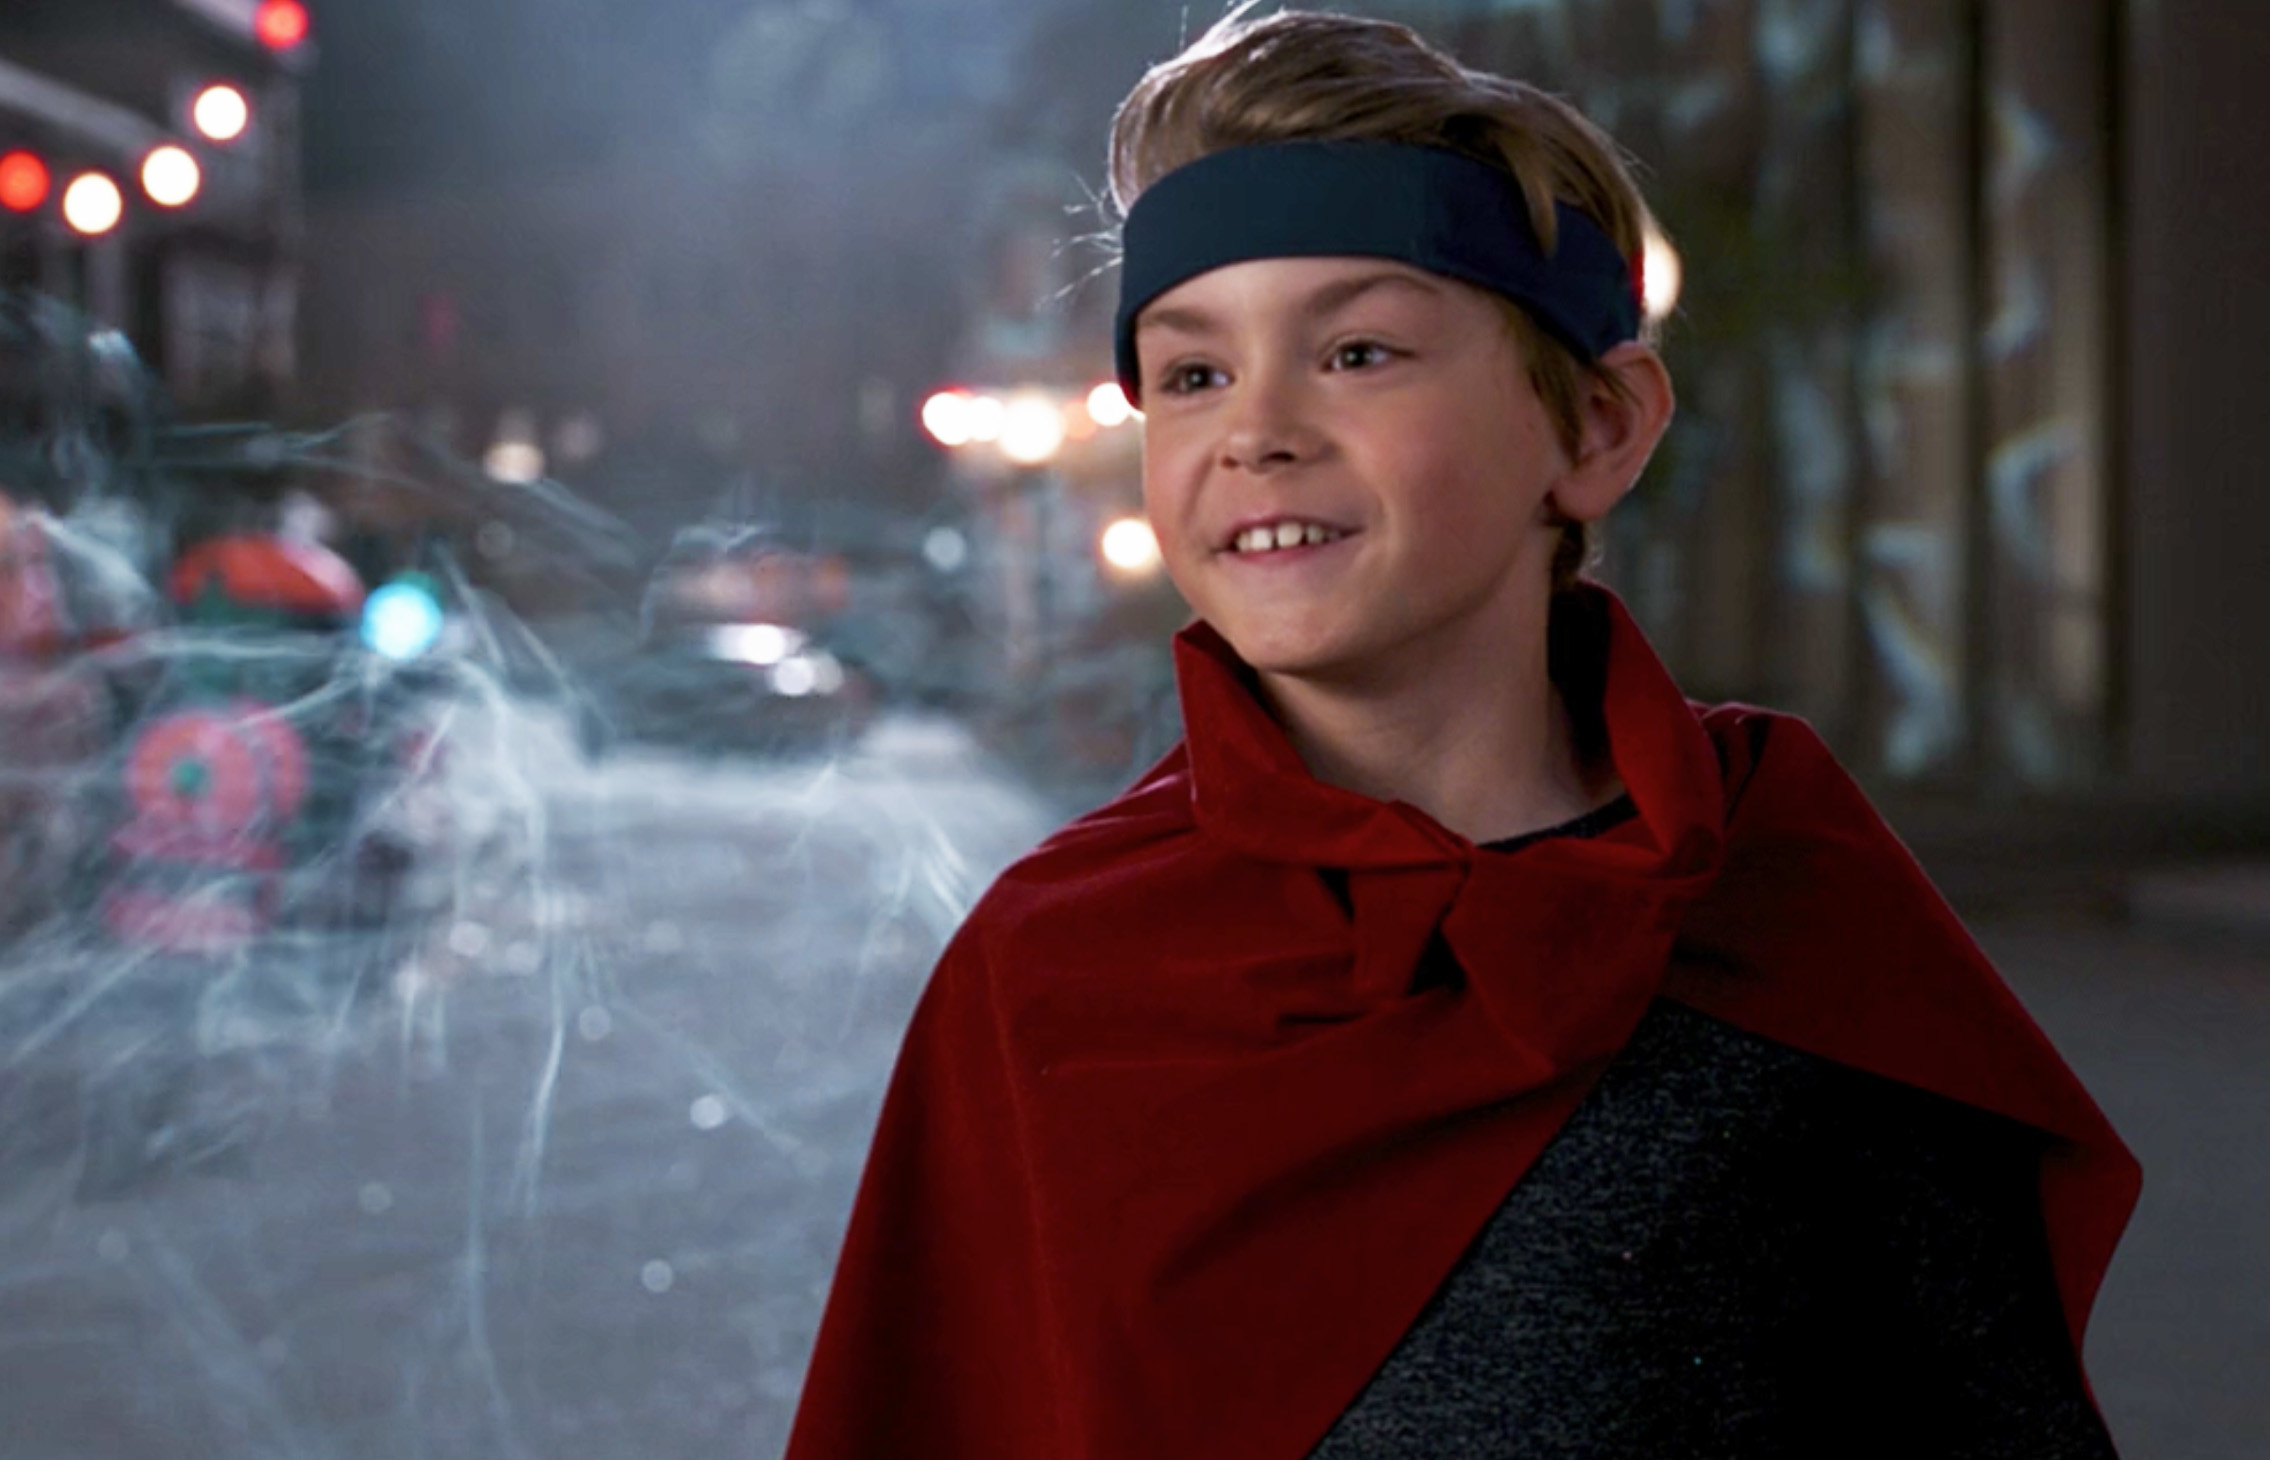 Billy's costume includes a red cape and a blue headband that circles his forehead